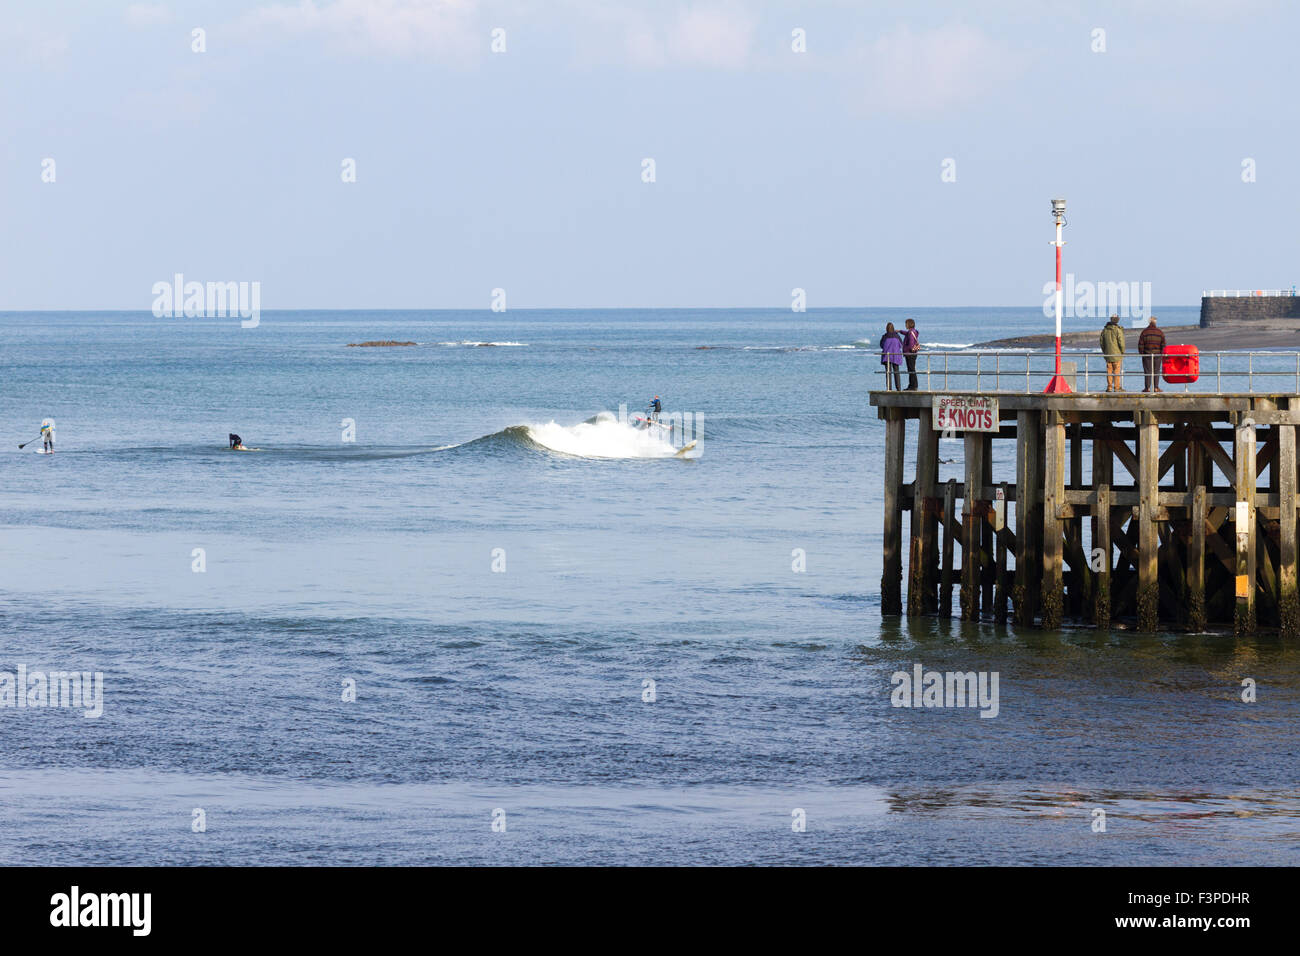 surfers riding the waves on the coast of Aberystwyth - Stock Image